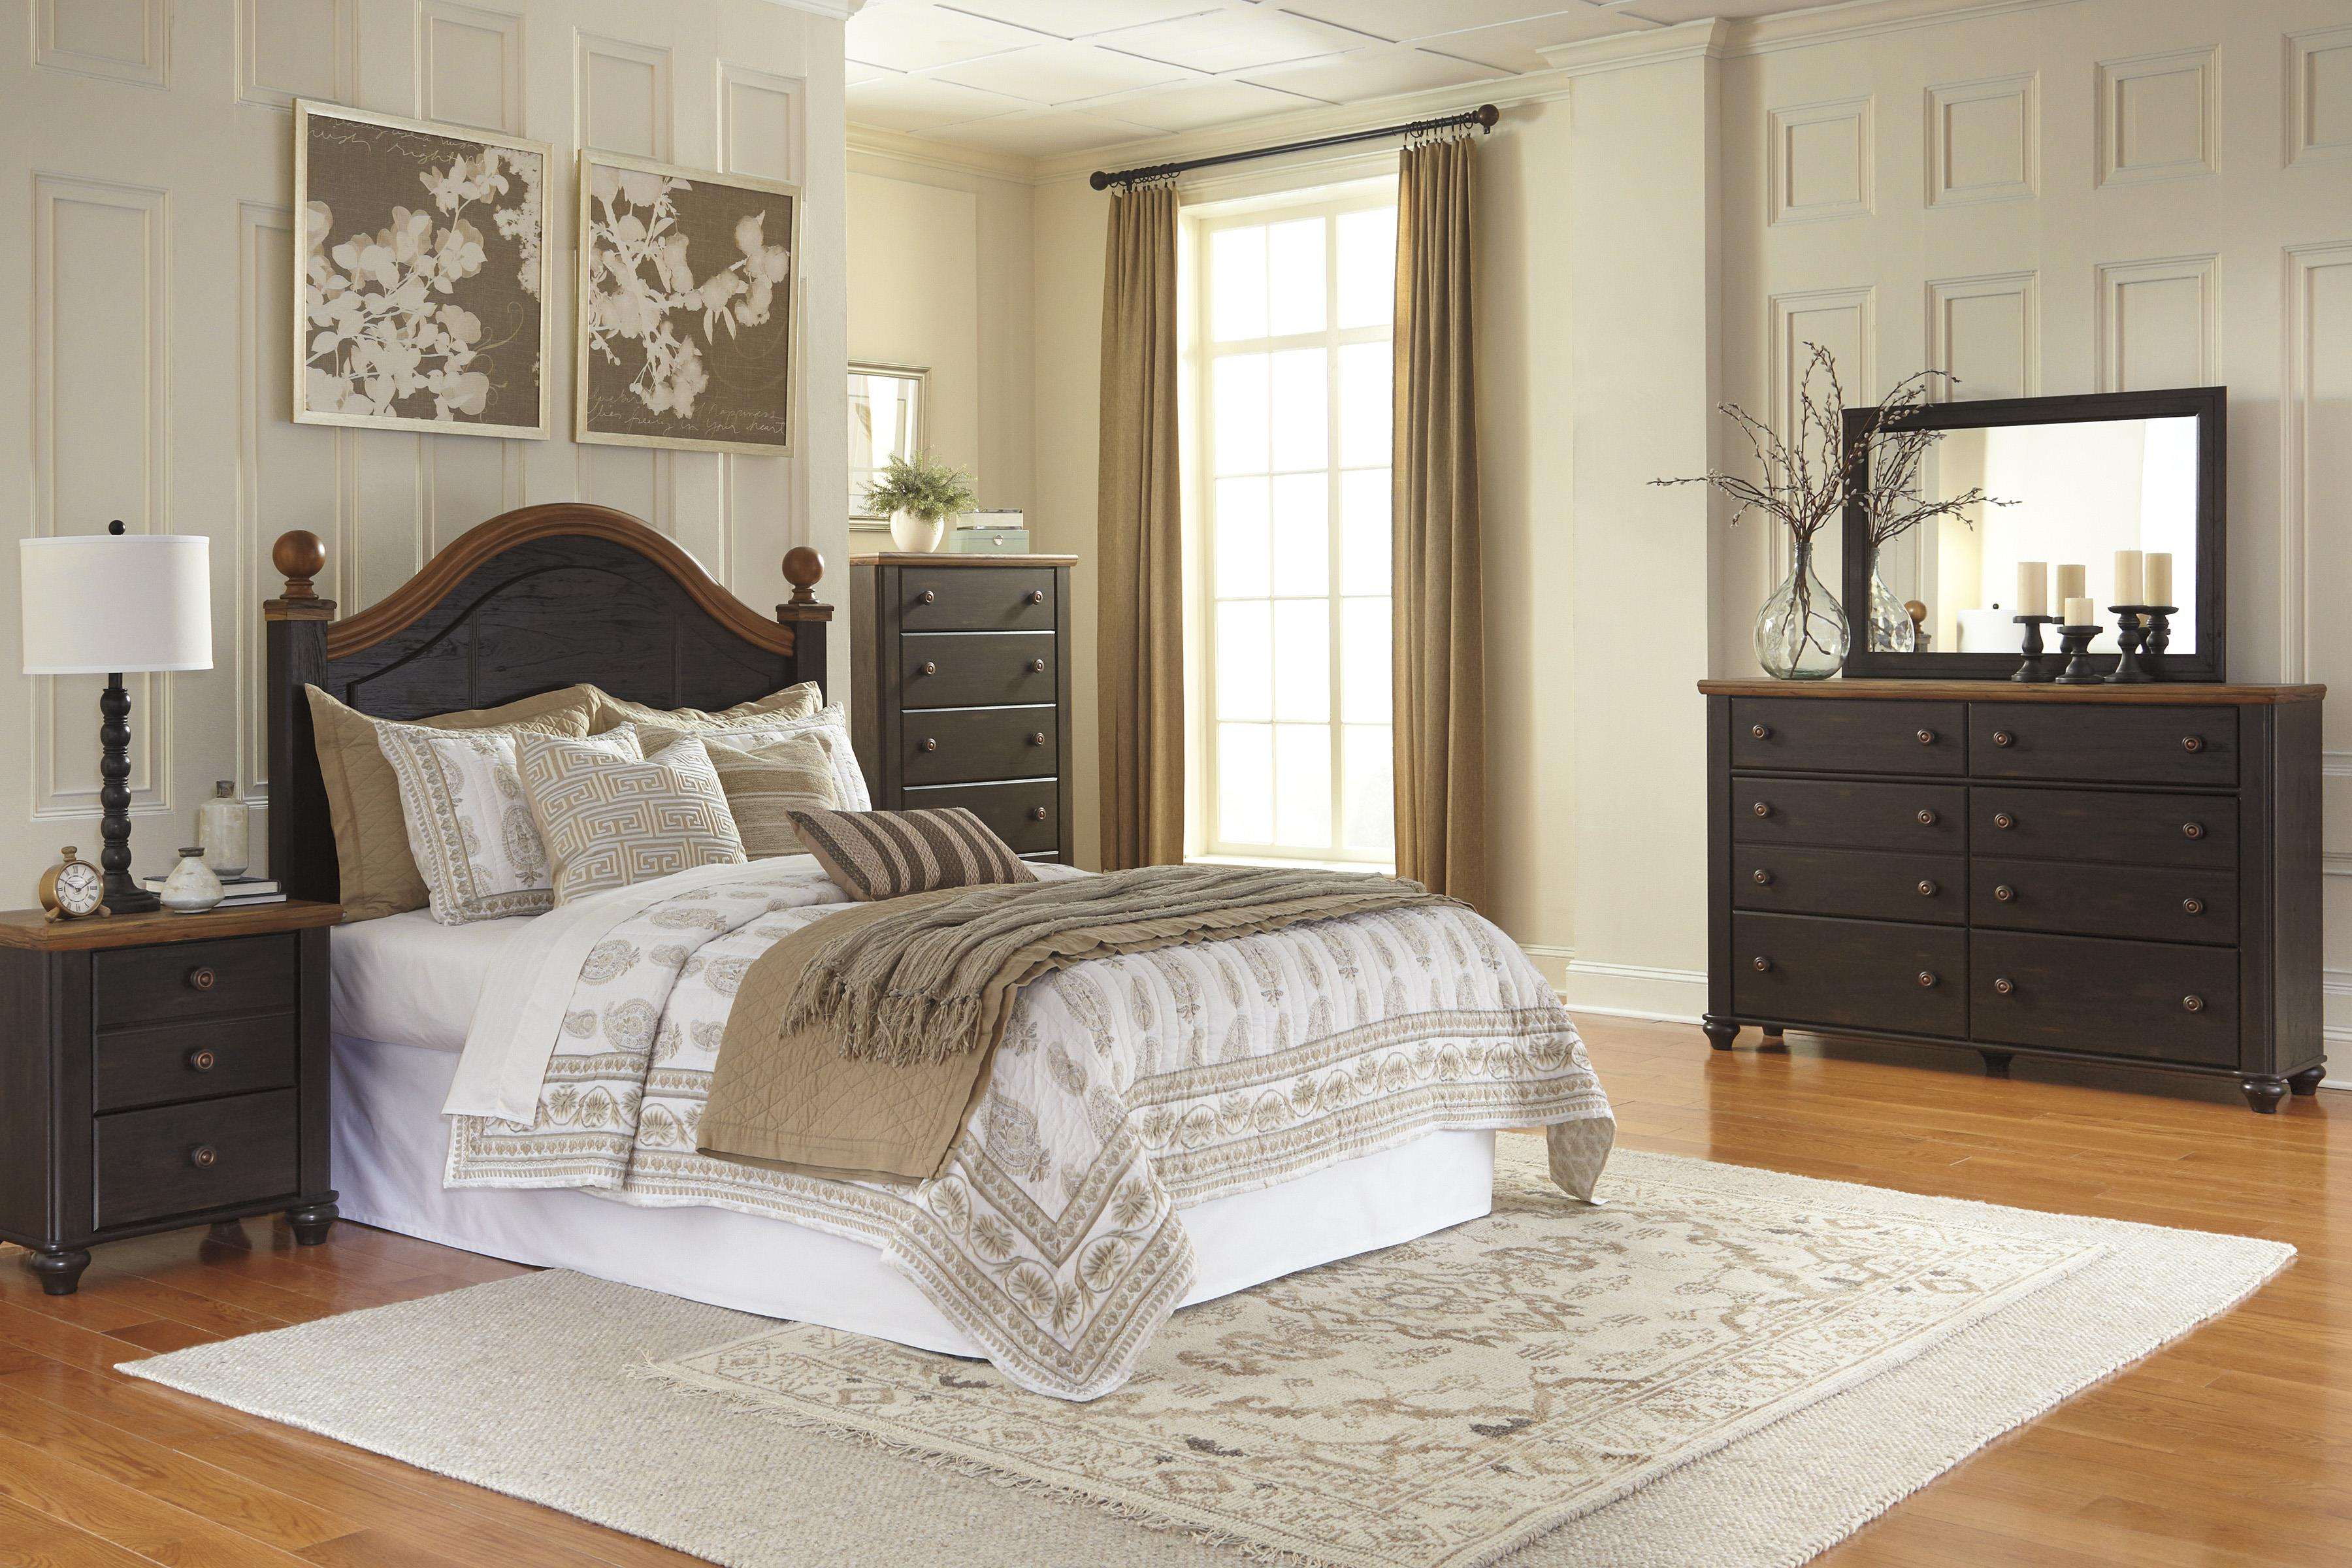 Signature Design by Ashley Maxington Queen Bedroom Group - Item Number: B220 Q Bedroom Group 1